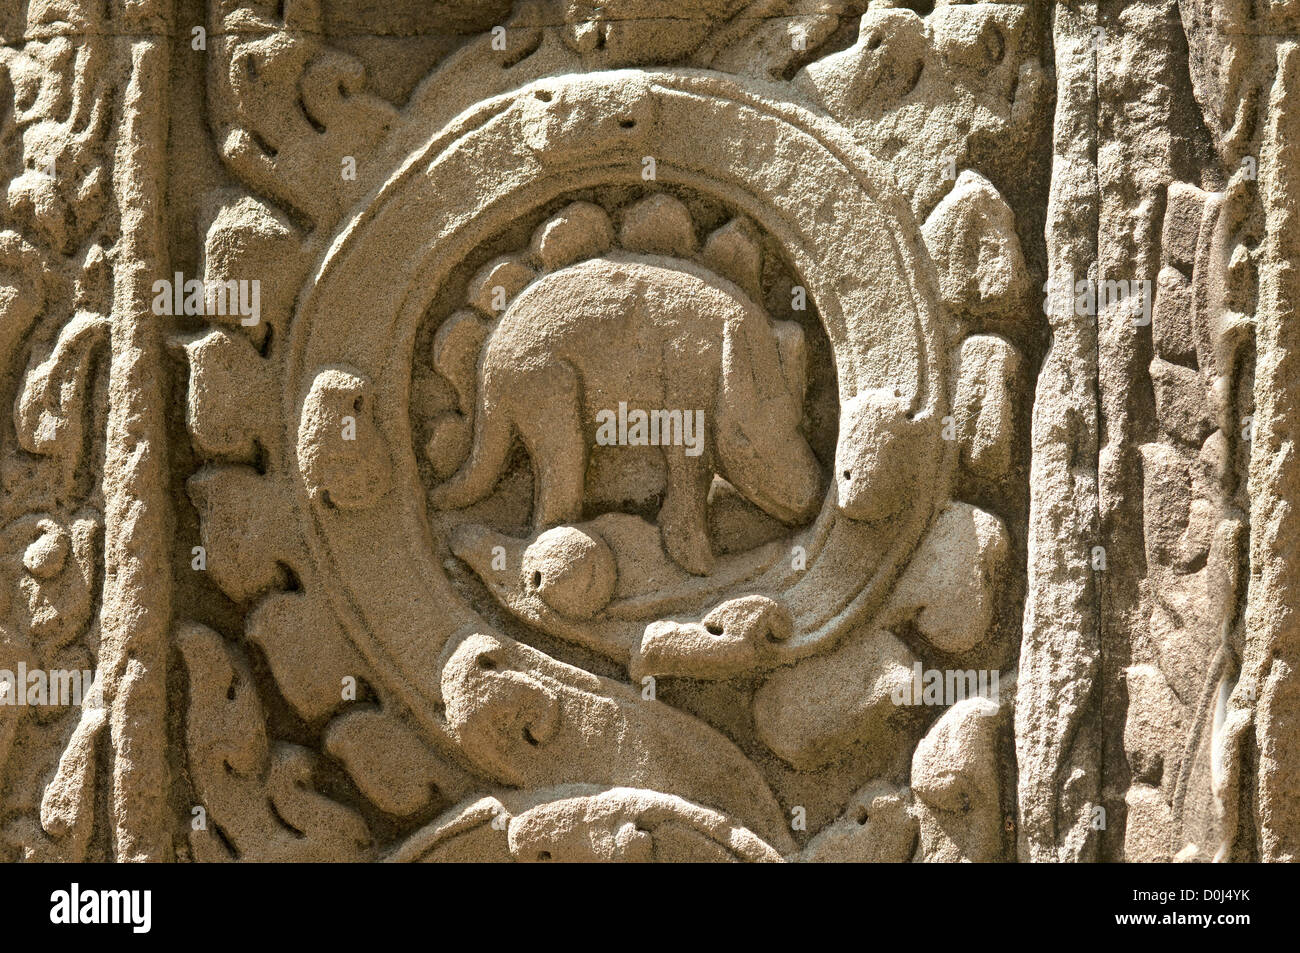 Stone carving of an animal ressembling a stegosaurus